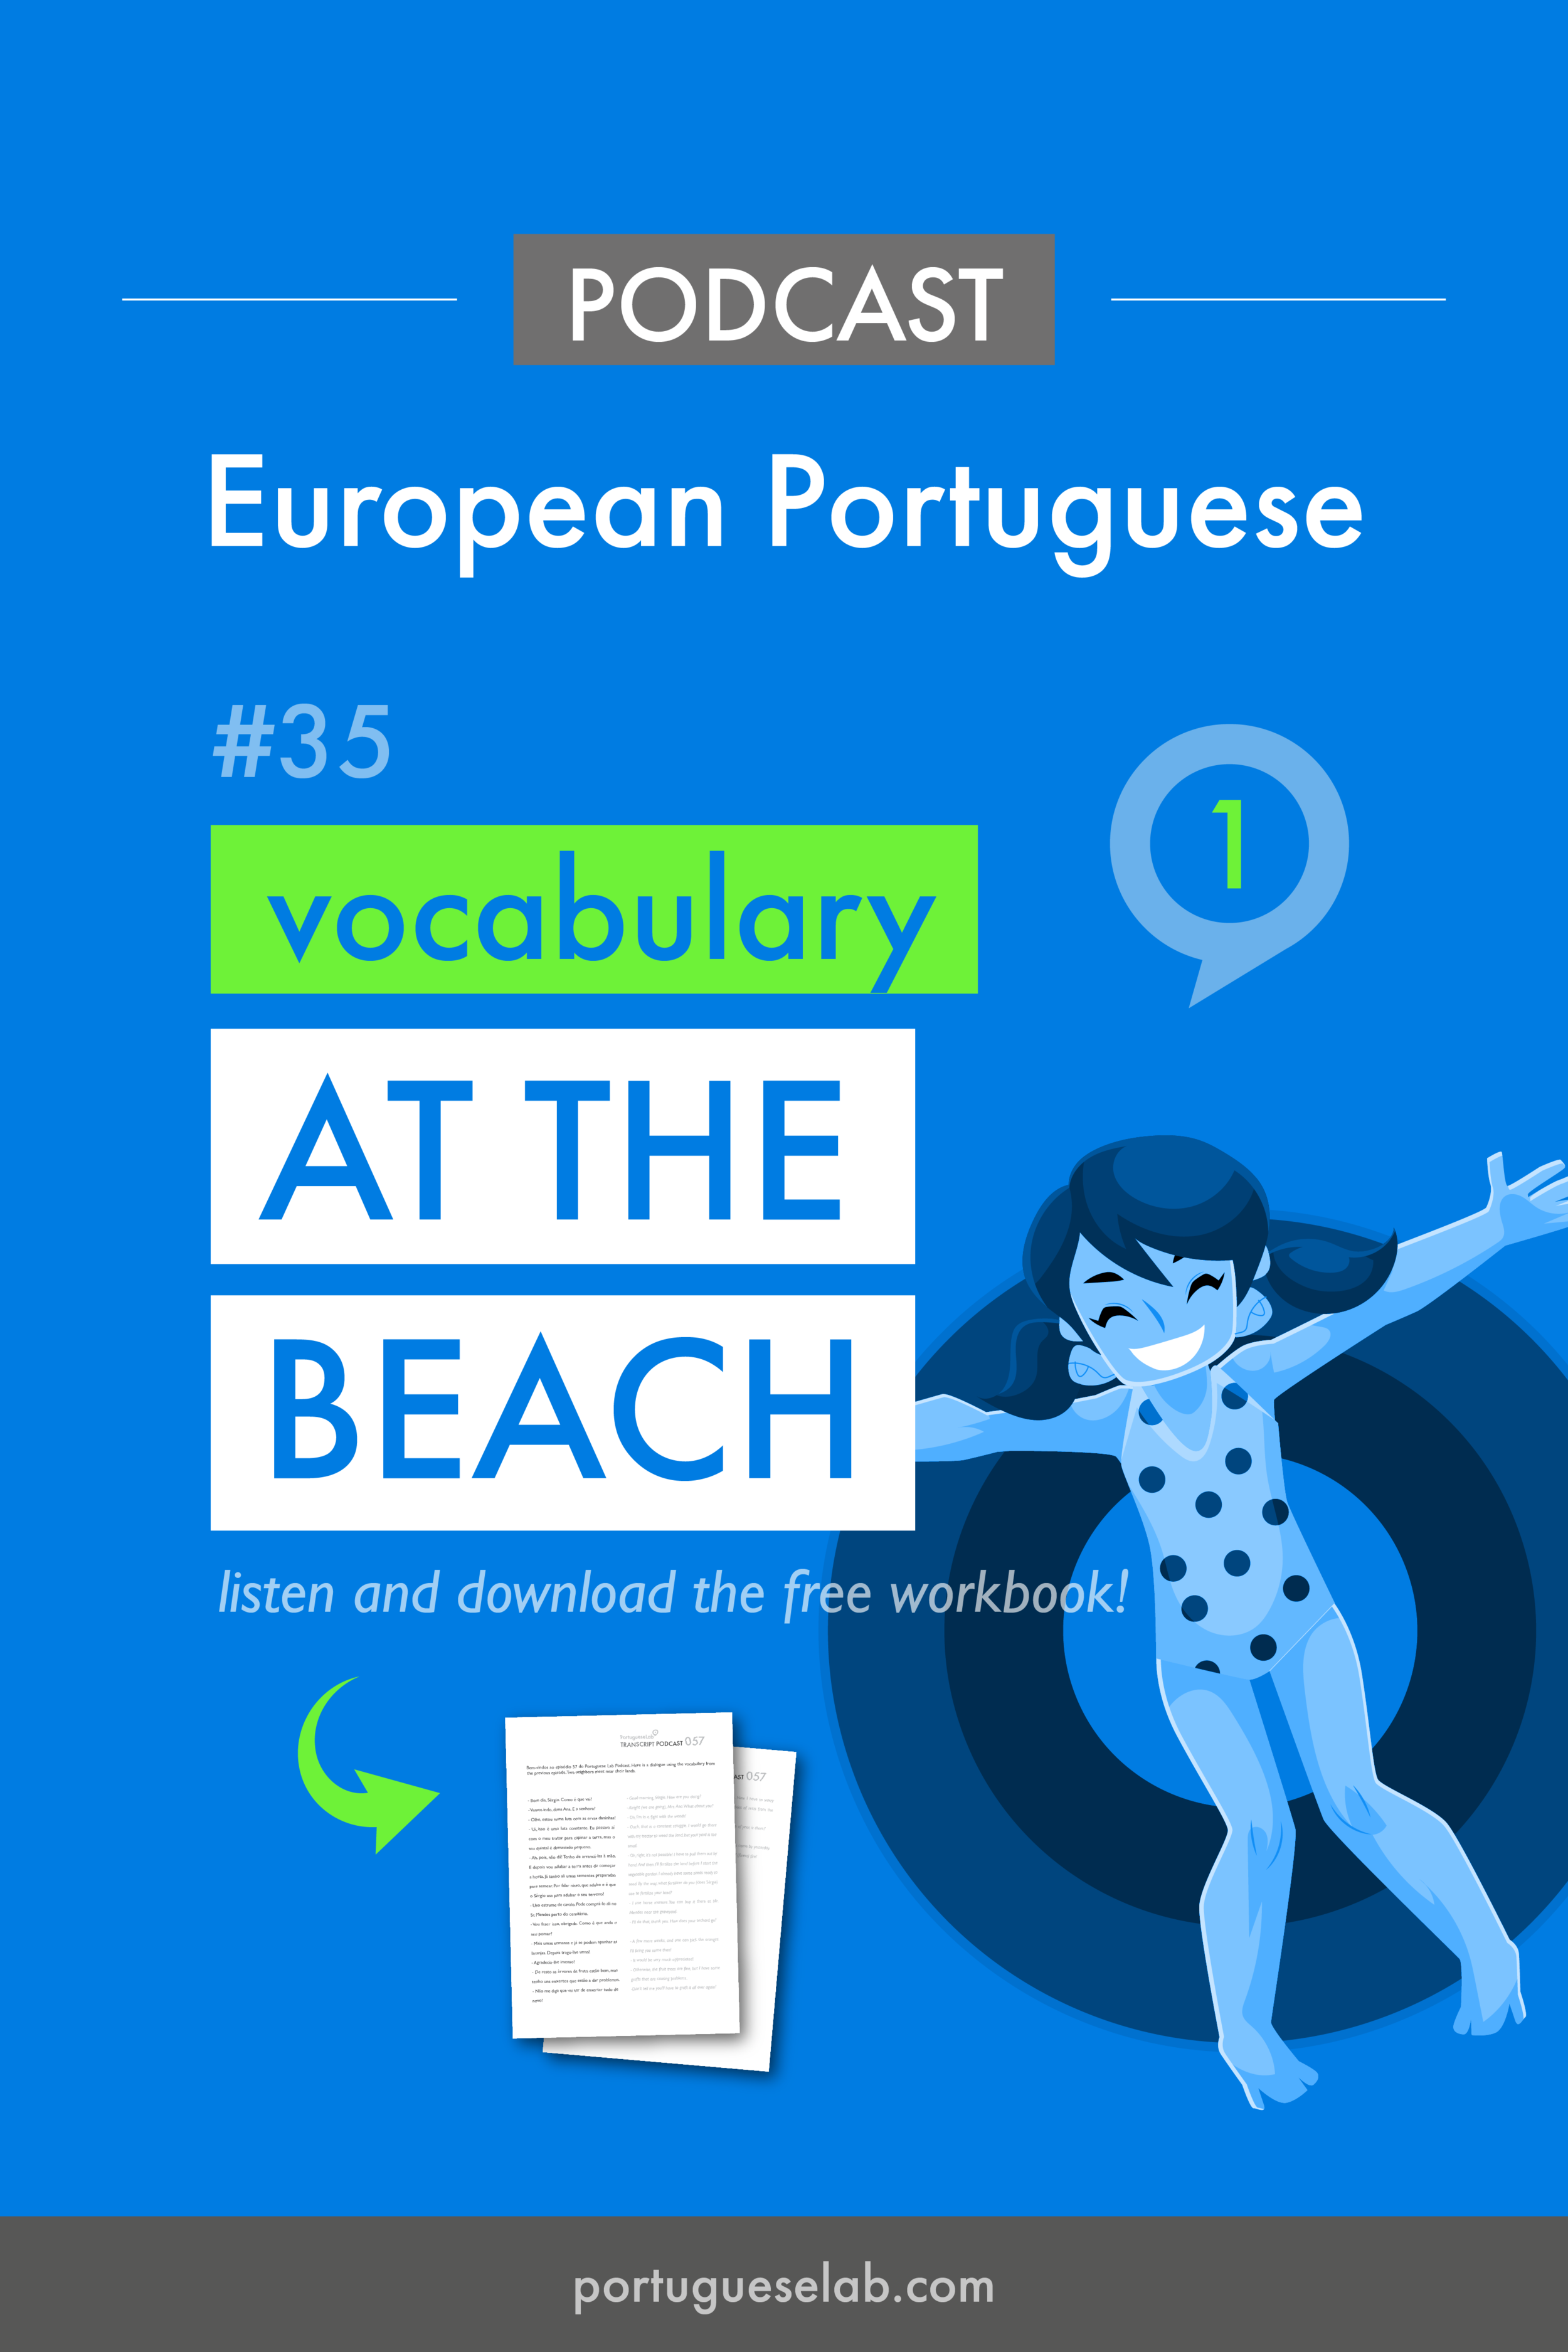 Portuguese Lab Podcast - European Portuguese - 35 - At the beach - dialogue.png